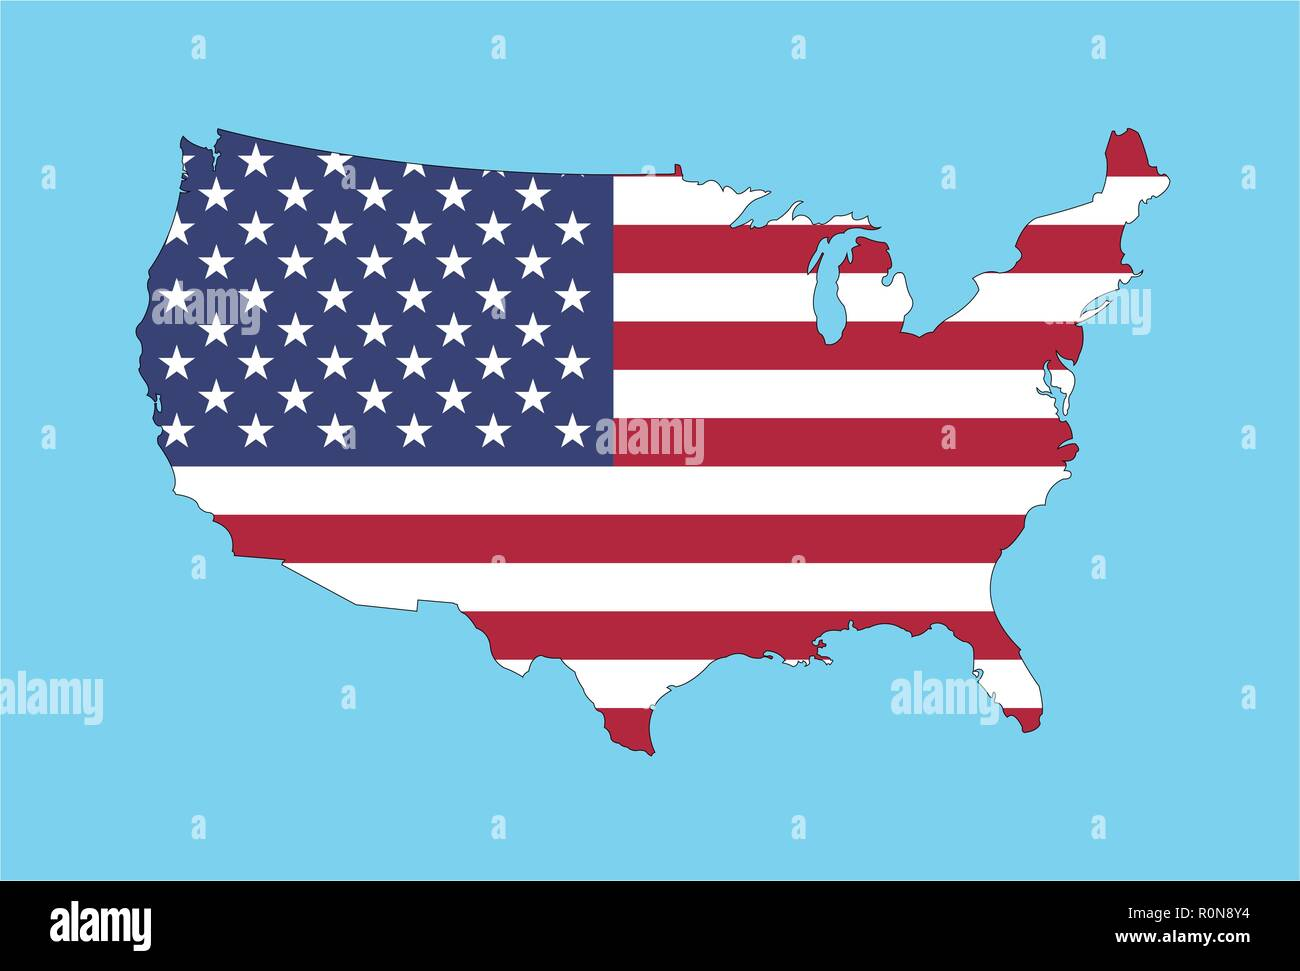 United States of America Map with USA Flag. All the objects, shadows and background are in different layers. Stock Vector